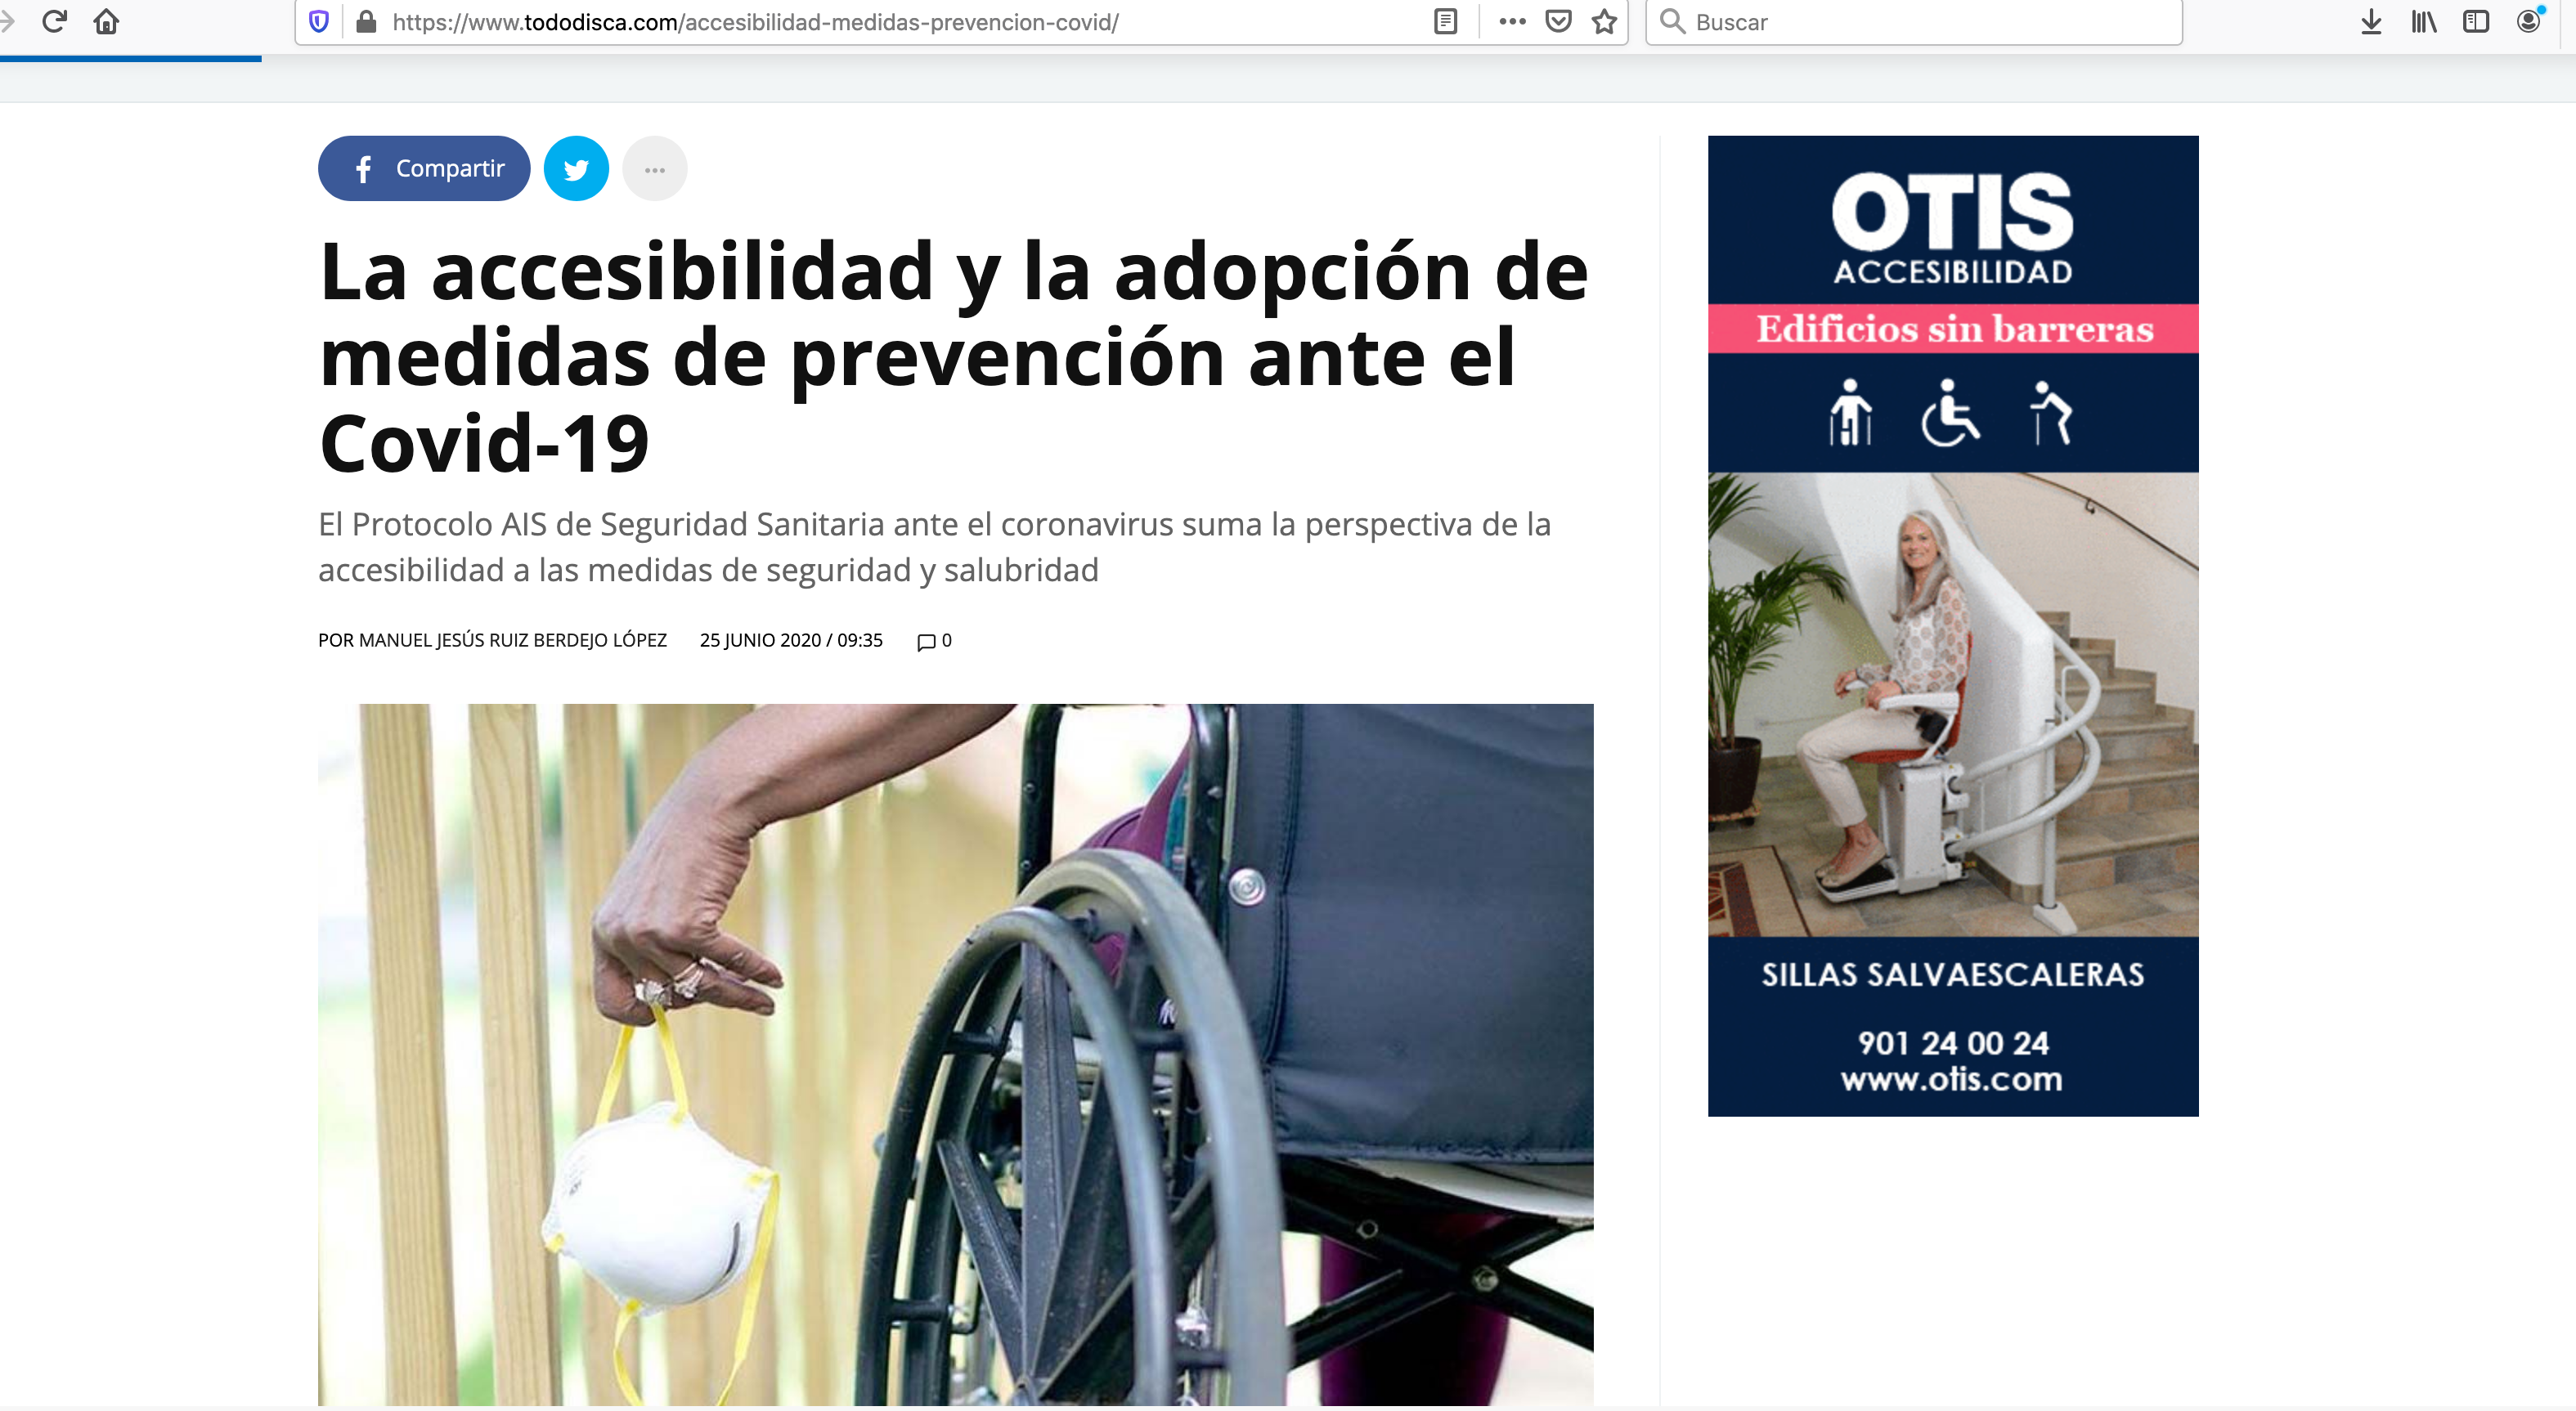 Captura de pantalla de la noticia de Tododisca